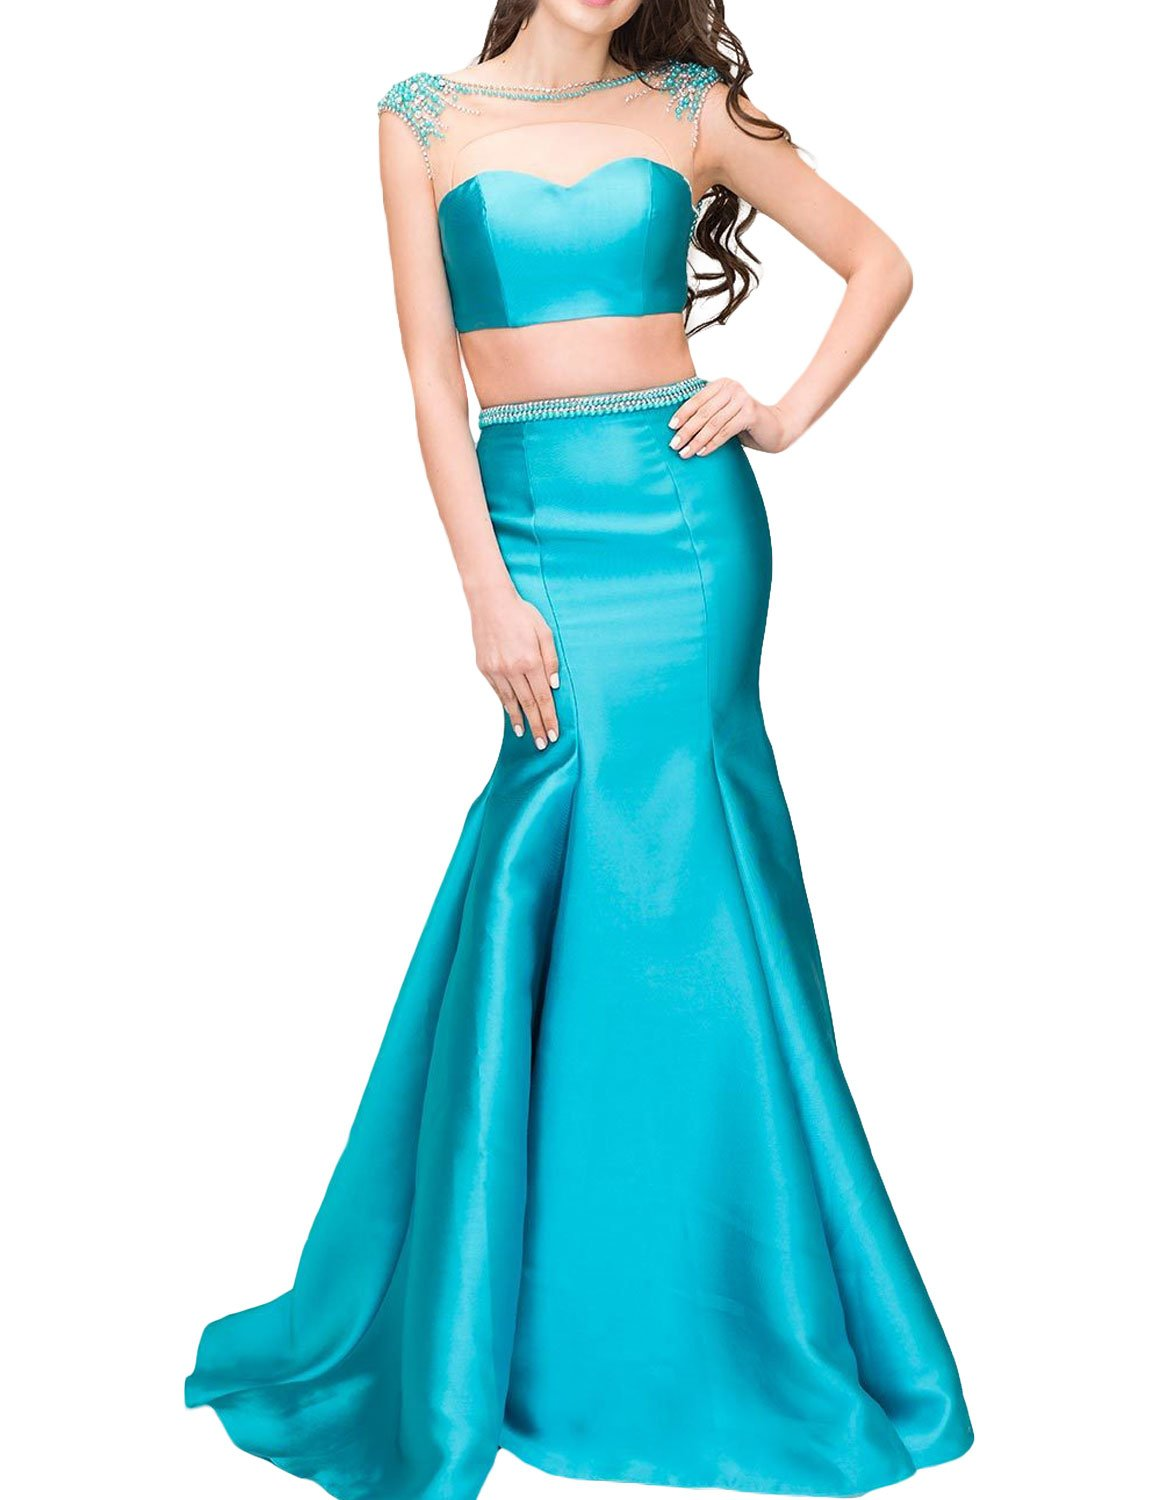 SeasonMall 2016 Two Pieces Satin With Beading Sweep Train Prom Dresses Size 0 Blue by SeasonMall